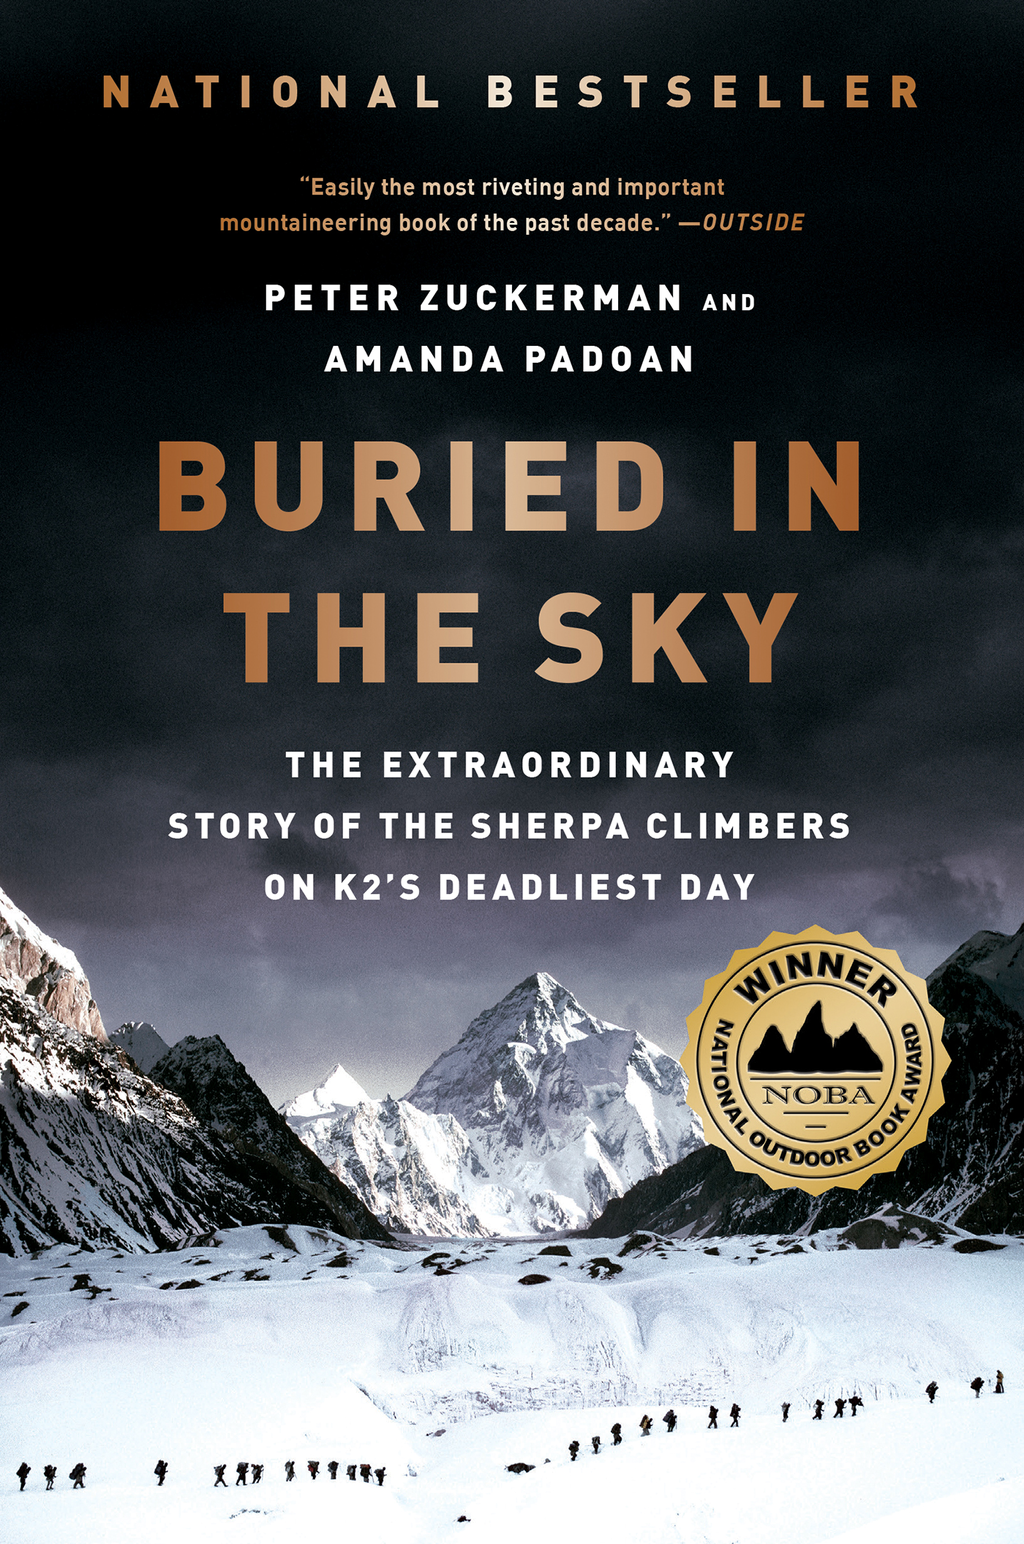 Buried in the Sky: The Extraordinary Story of the Sherpa Climbers on K2's Deadliest Day By: Amanda Padoan,Peter Zuckerman